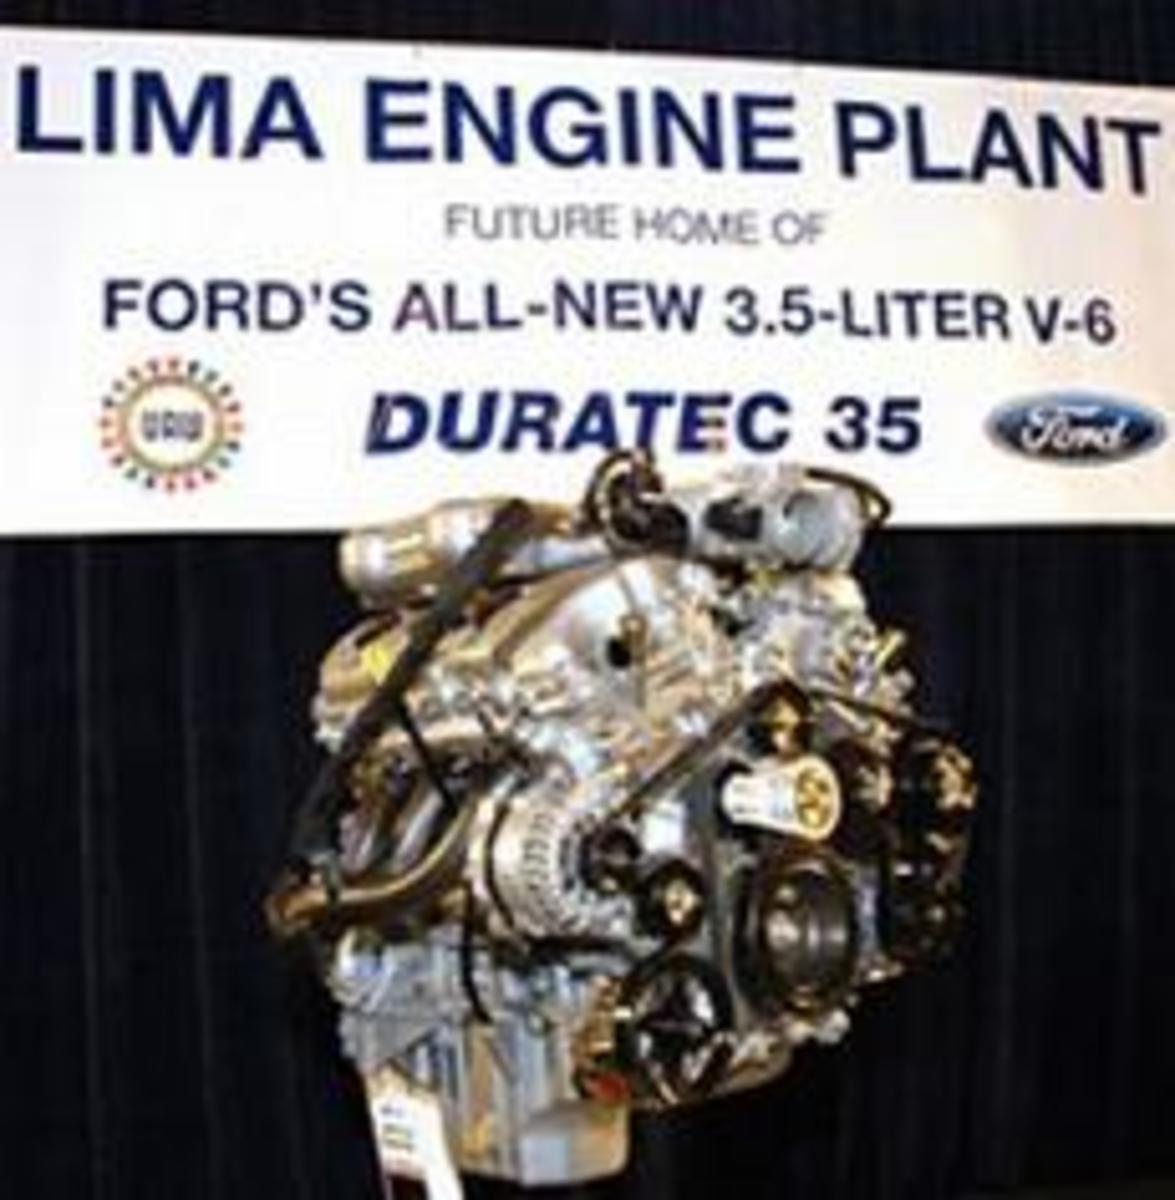 Duratec 35 V6 at Ford Lima Engine Plant reveal